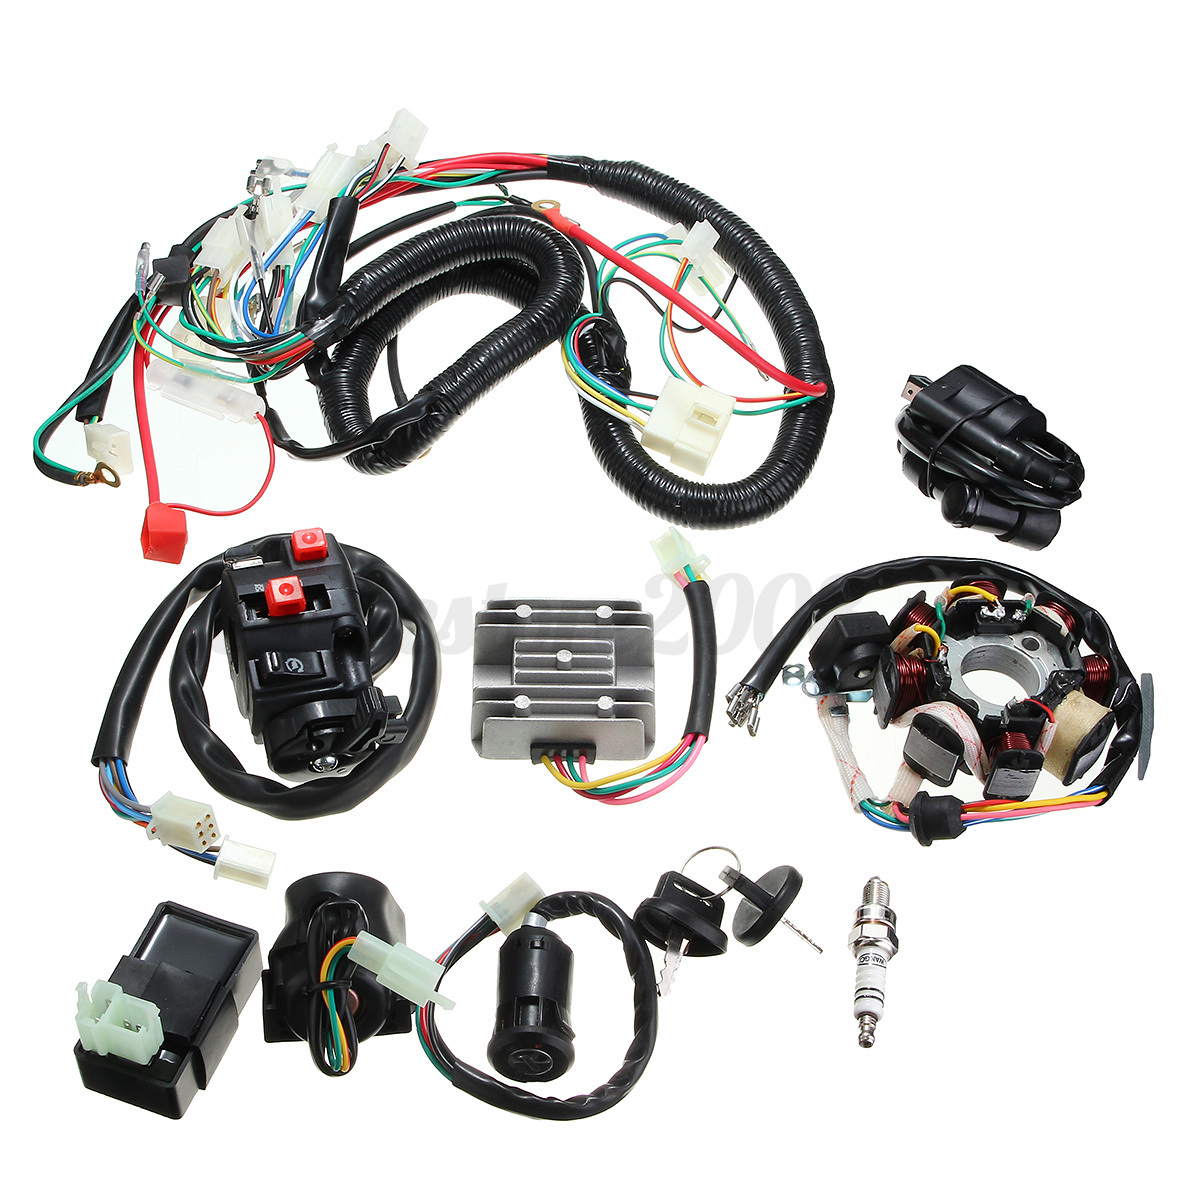 motorcycle stator wiring diagram winnebago view diagrams 125 150 200 250cc cdi wire harness assembly